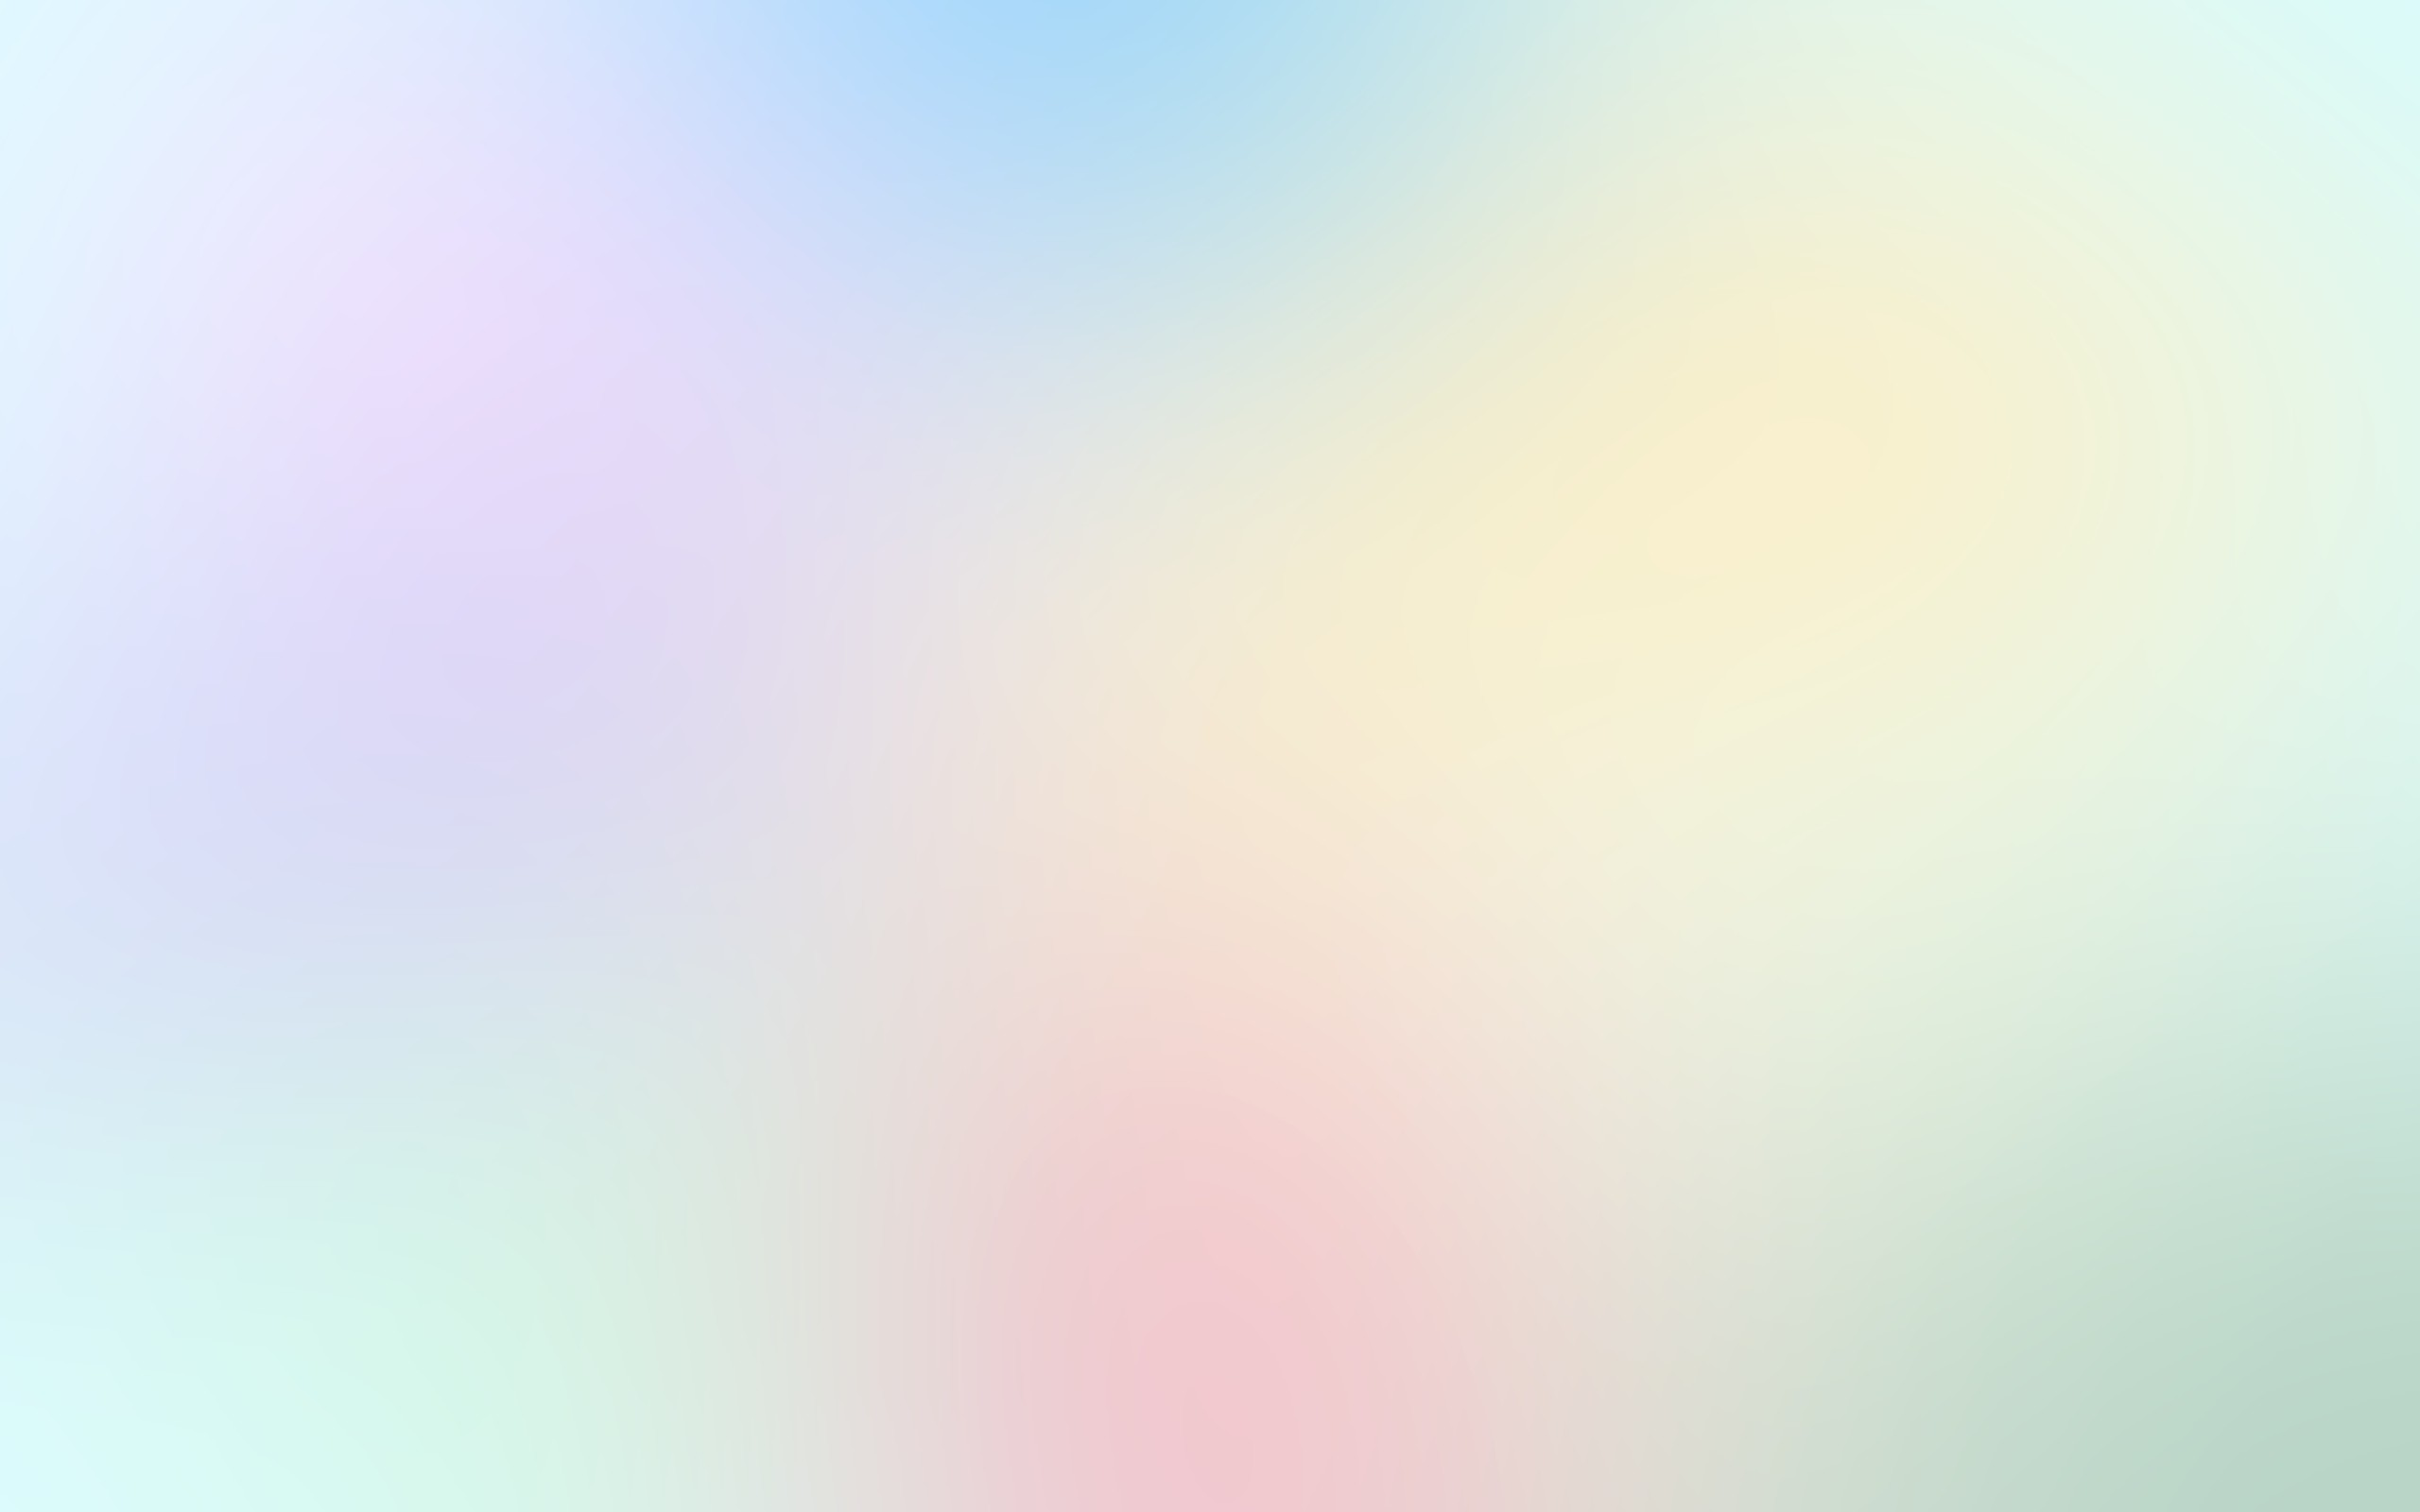 Cream Colored Backgrounds 183 ①